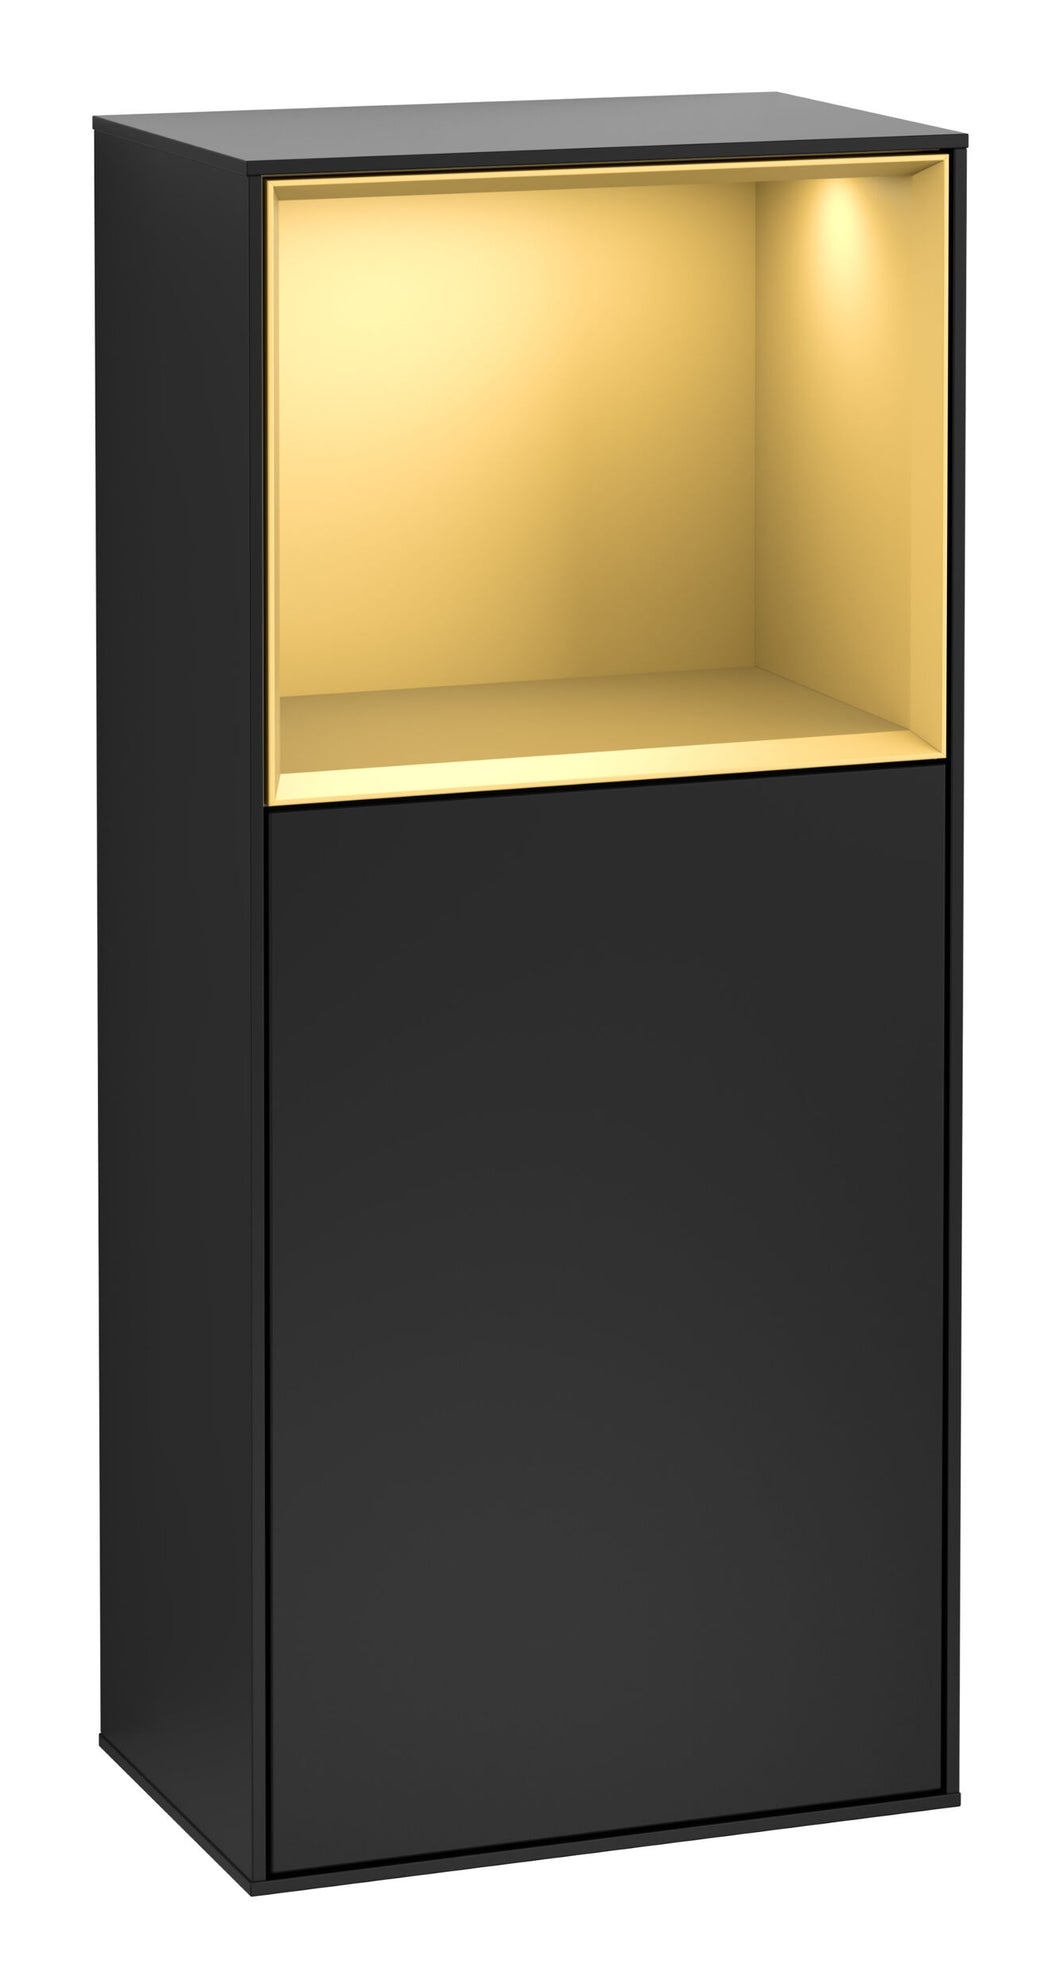 Finion Side Cabinet Gold/Black Matt